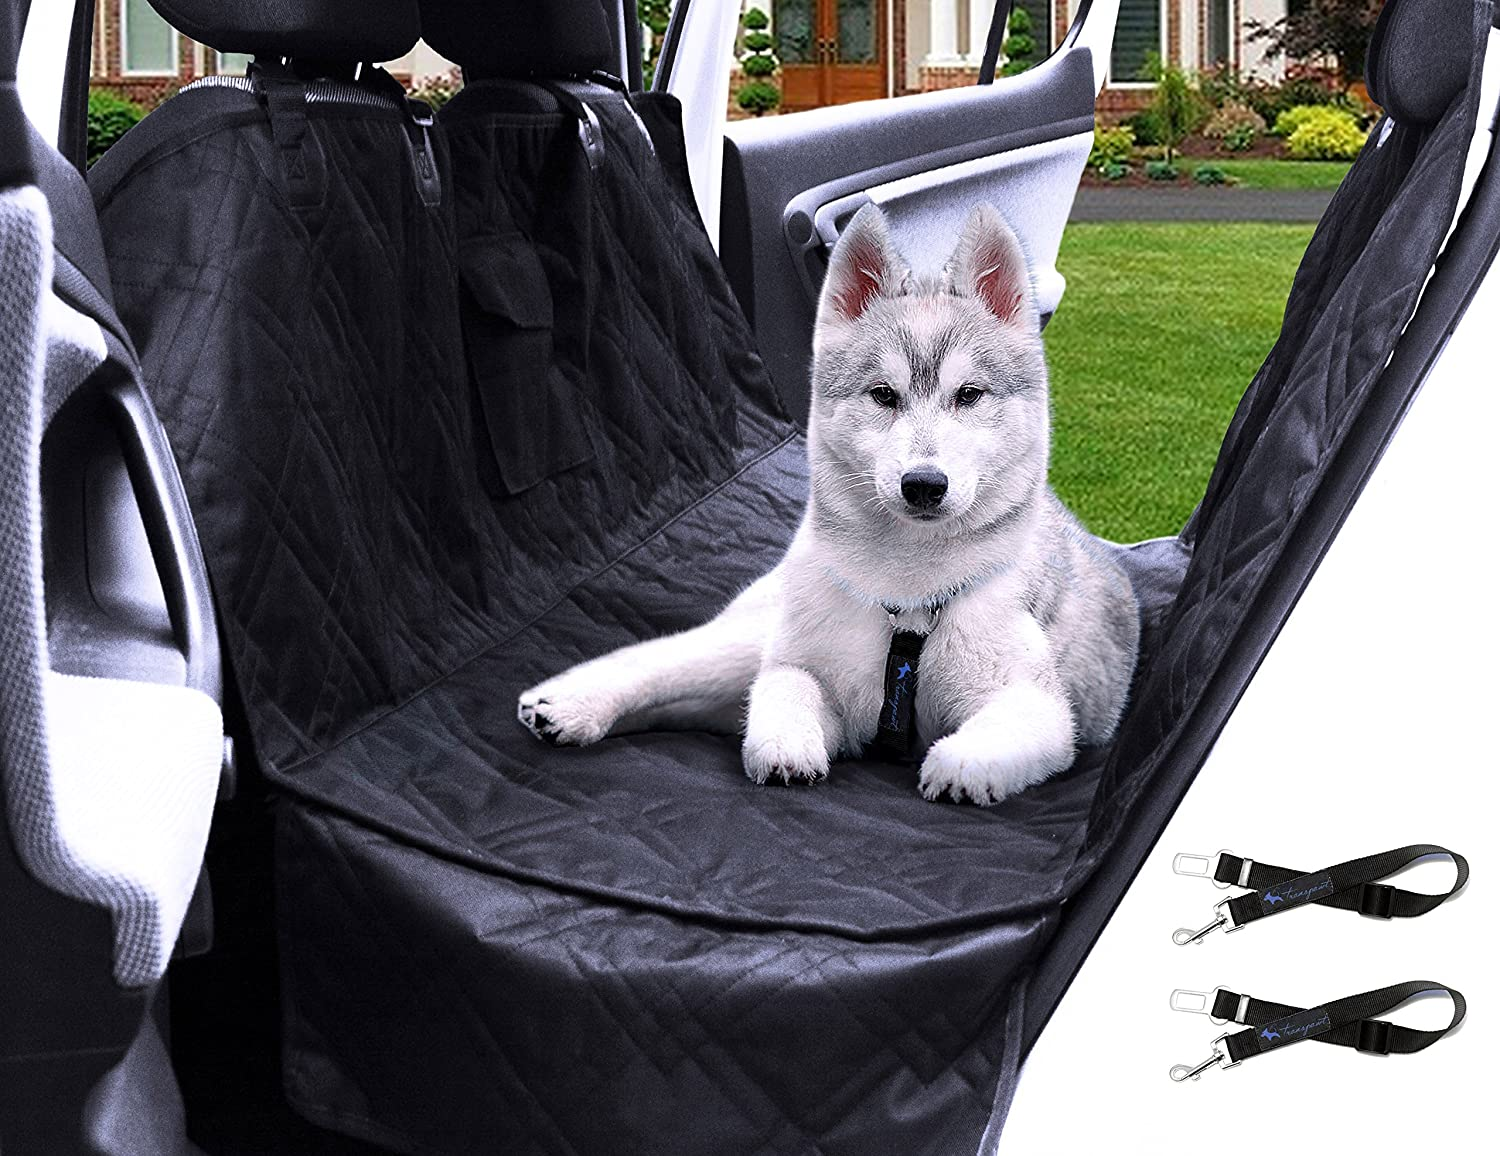 Transpawt Luxury Pet Car Back Seat Cover – Large Waterproof Hammock Style – Black, 57 L x 55 W with Additional 8 Side Seat Protectors. Includes Bonus x2 Dog Seat Belts